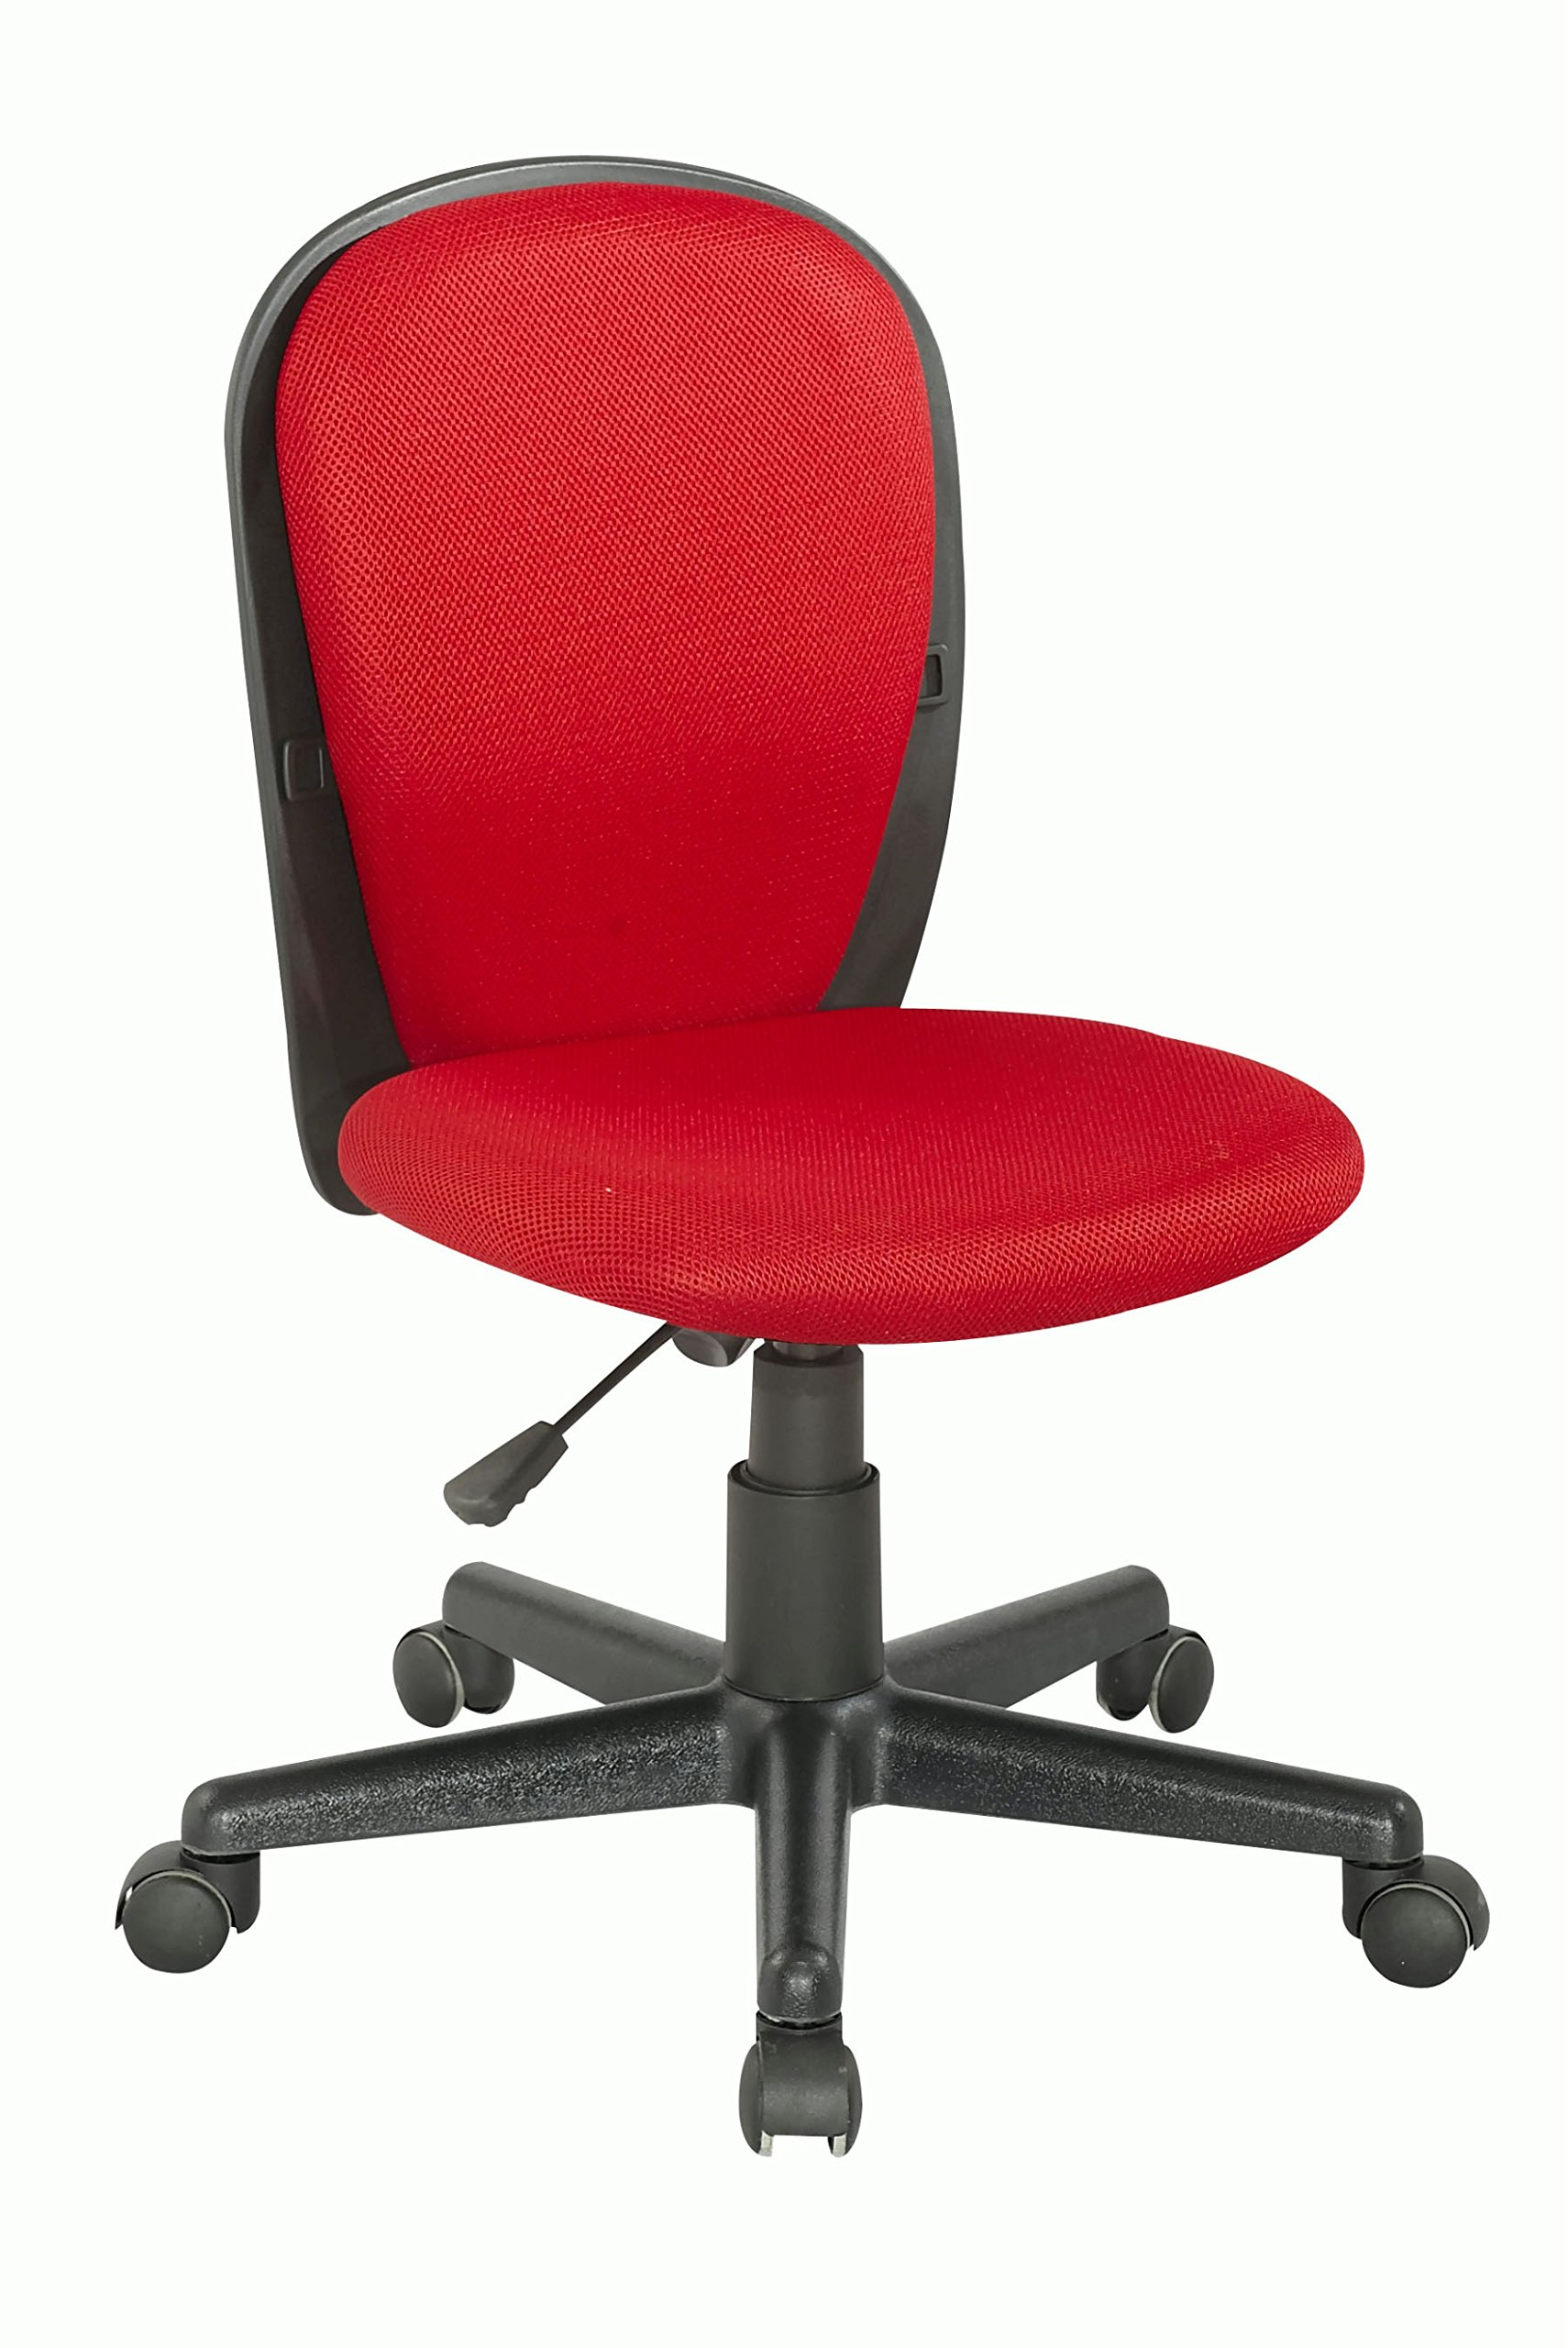 MILAN Bailee Fabric Youth Desk Chair, Red by MILAN